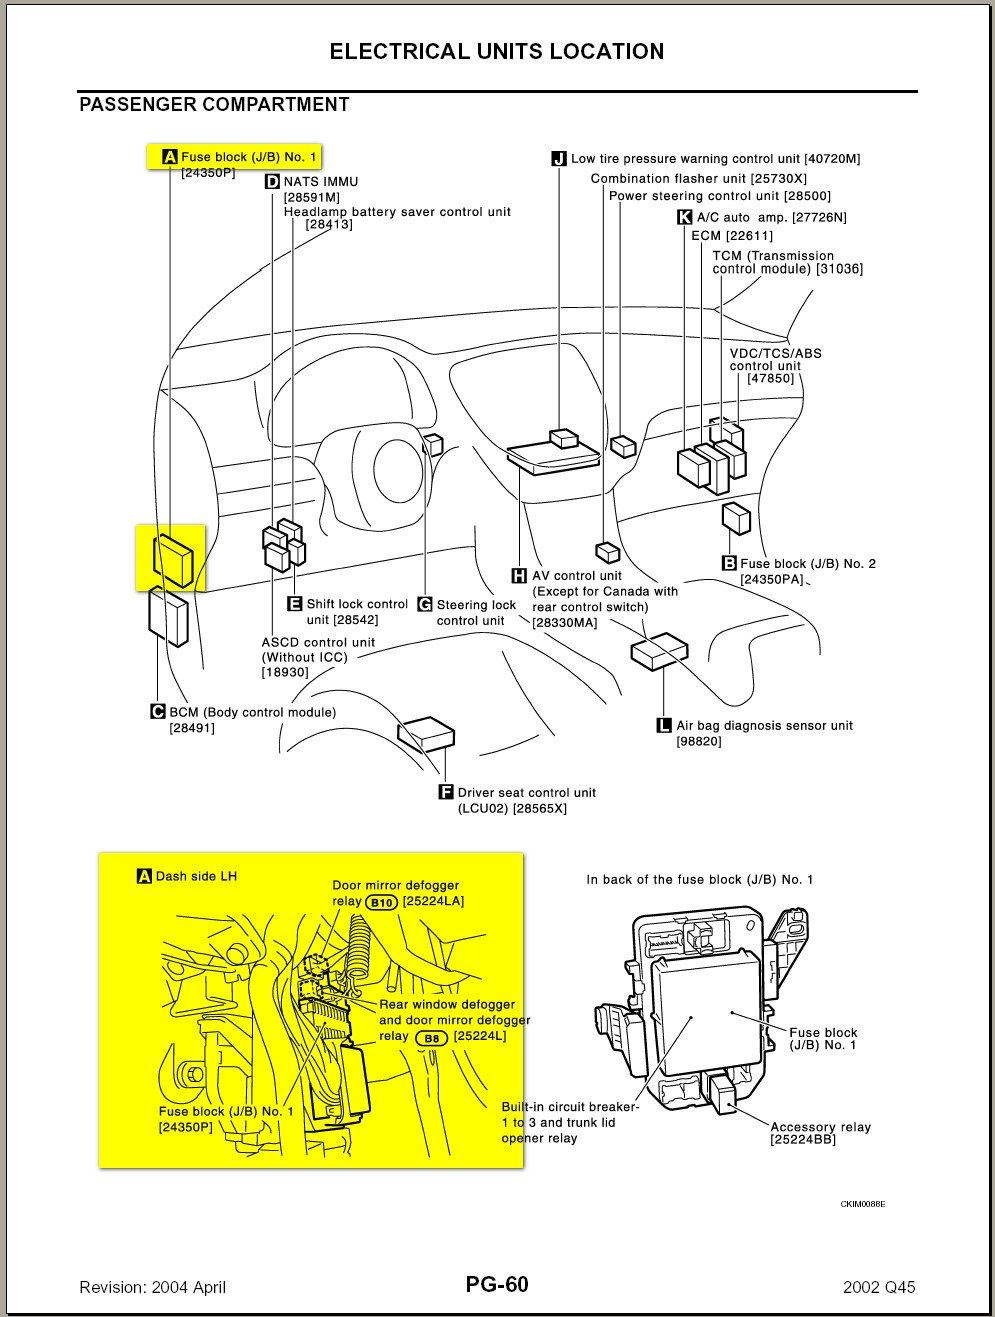 1998 Infiniti Q45 Fuse Box Electrical Wiring Diagrams Toyota Side Mirror Diagram Infinity Q45t Detailed M45